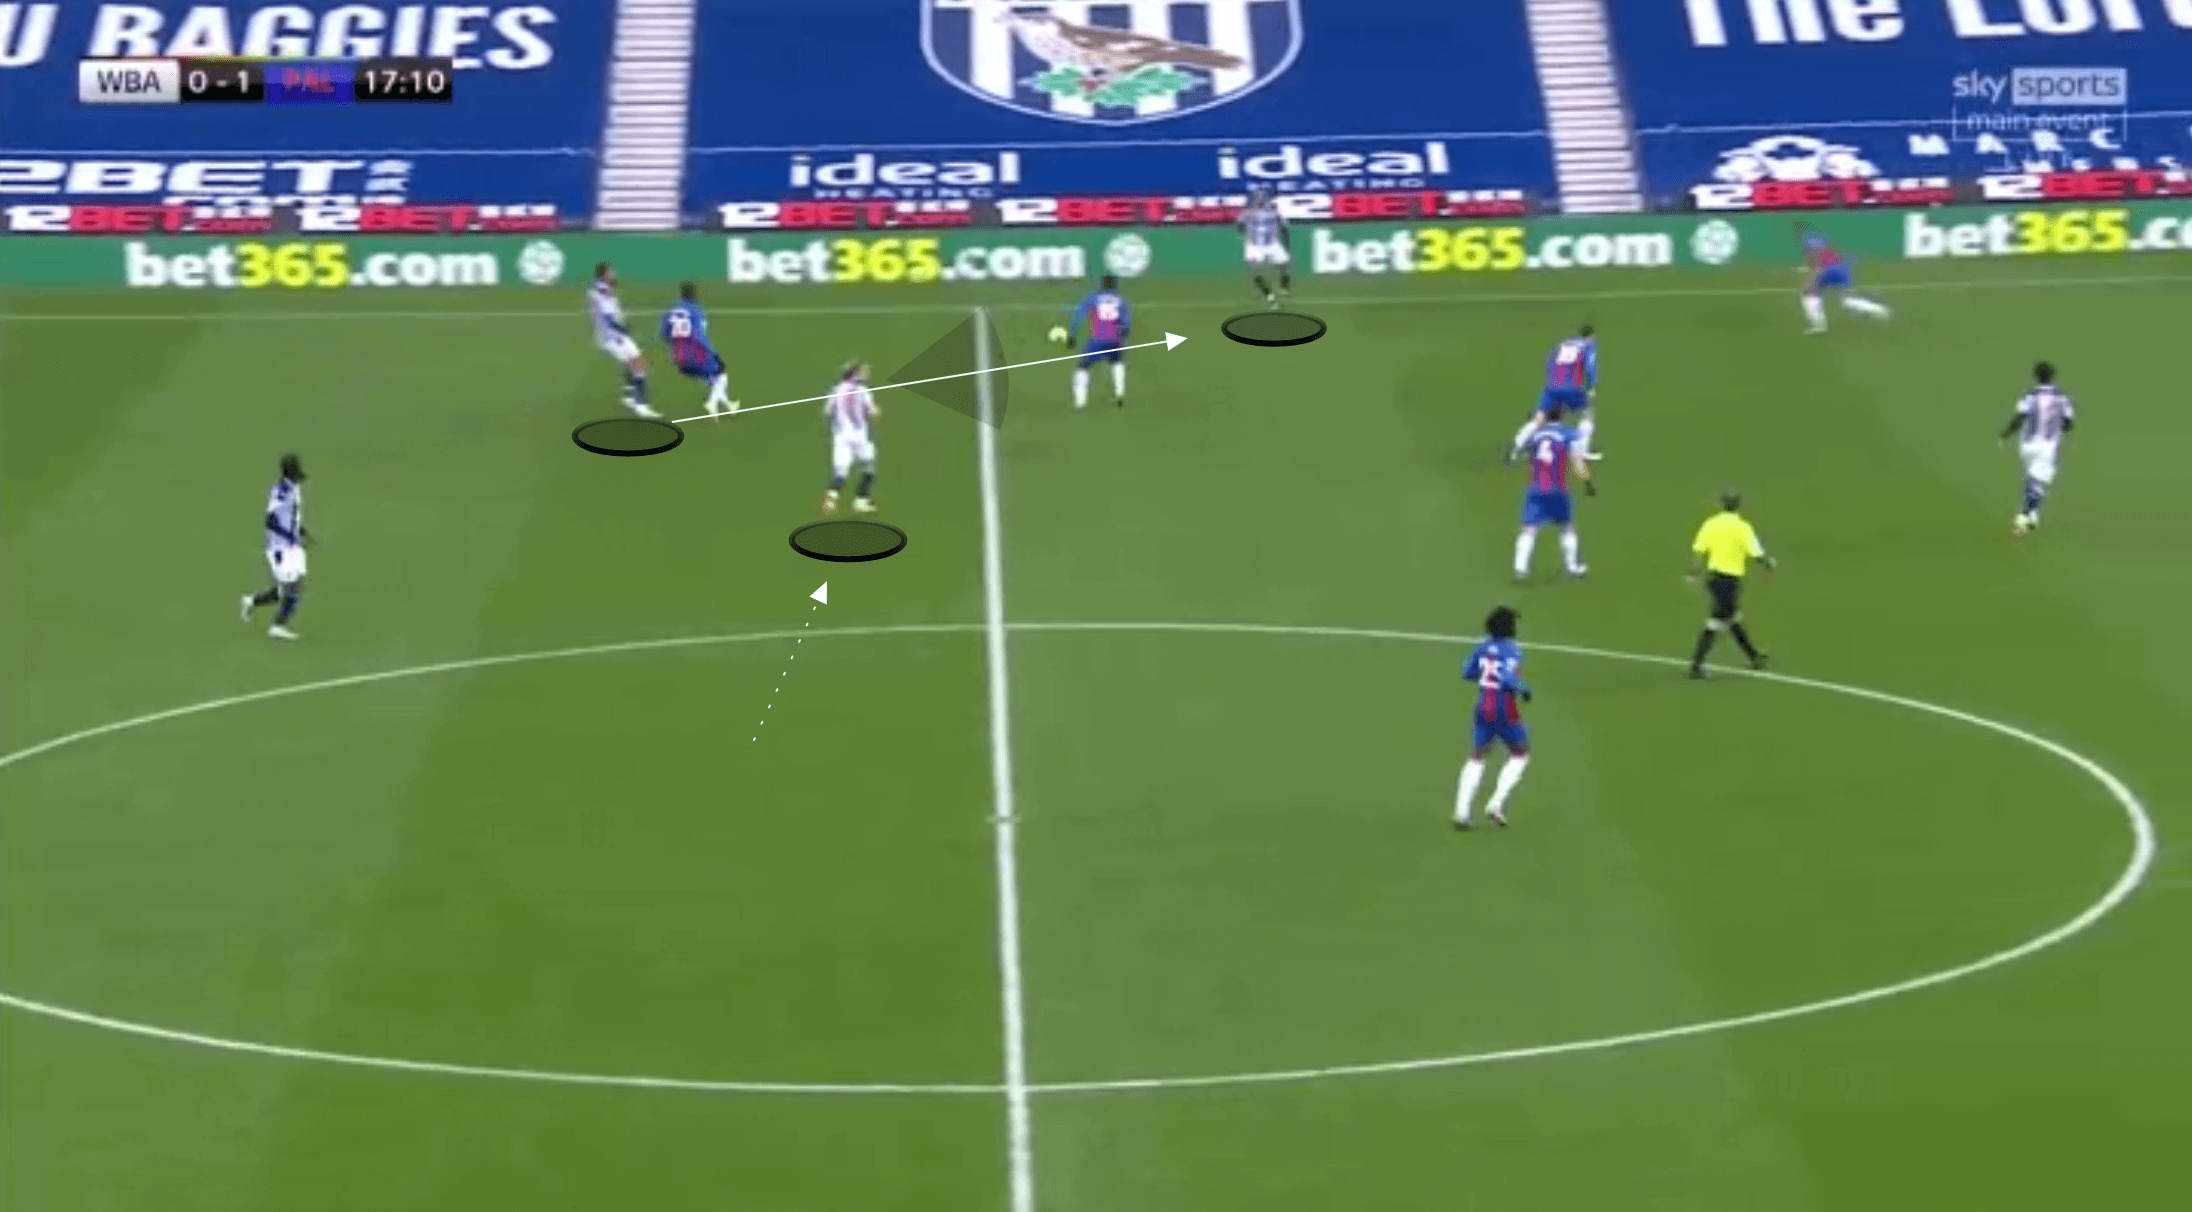 EPL 2020/21: Conor Gallagher at Crystal Palace - scout report tactical analysis tactics